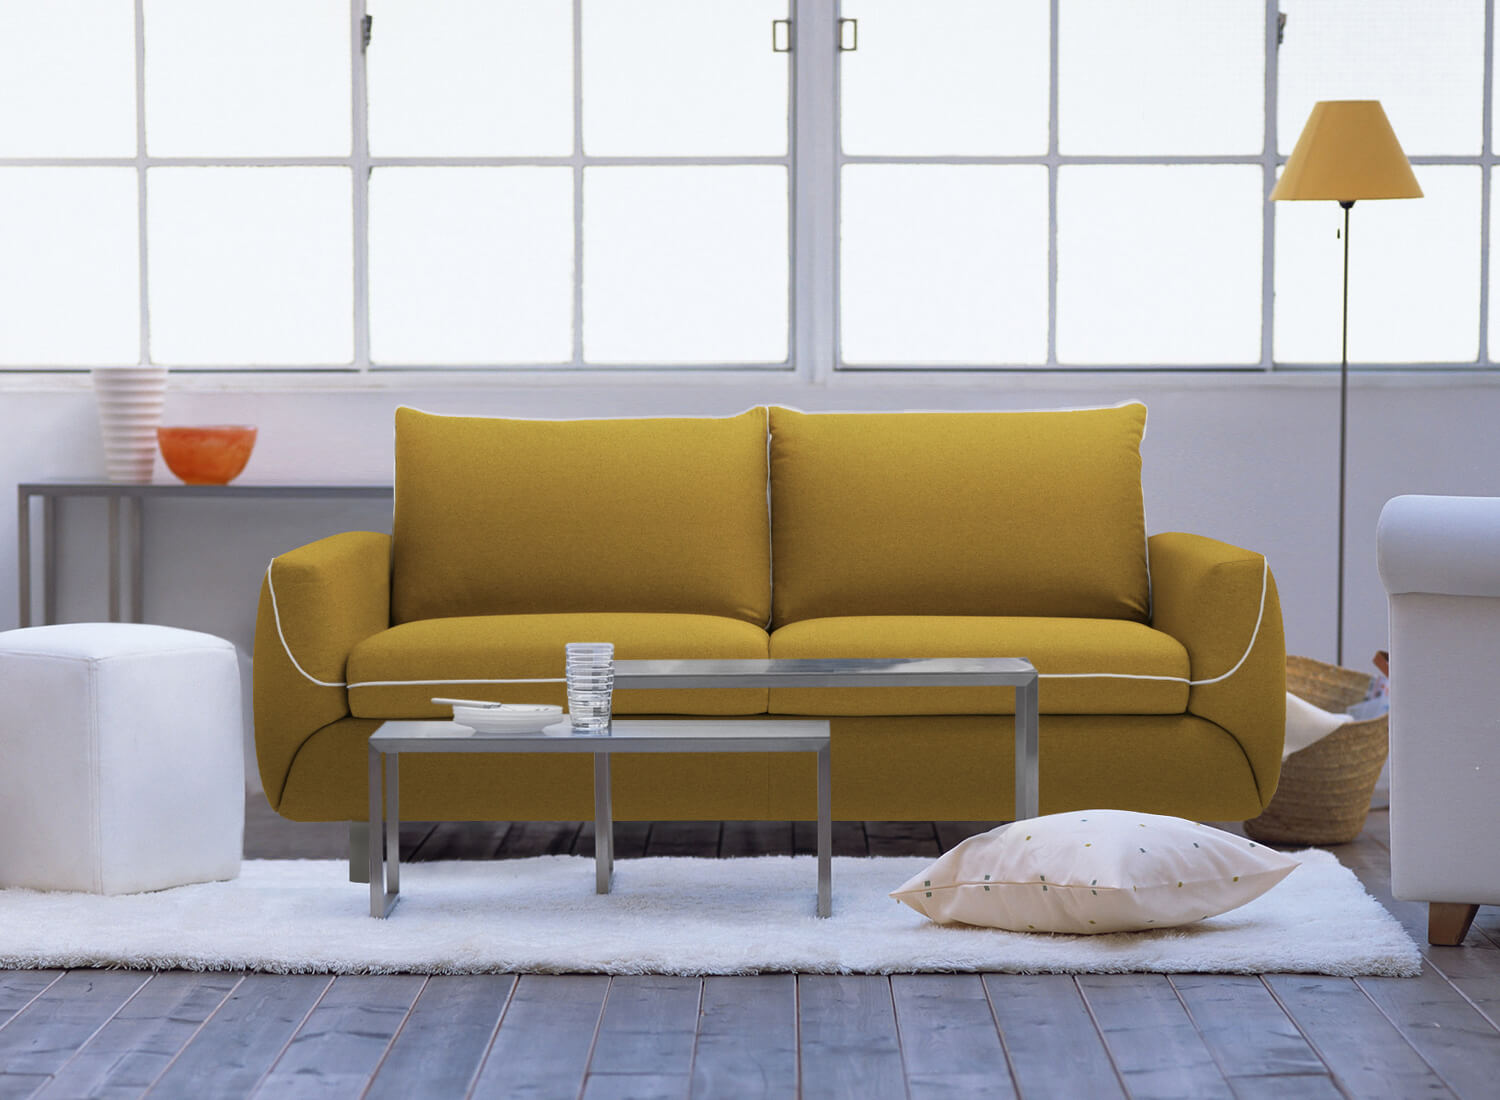 Maestro Pezzan USA - Made in Italy sofa-bed